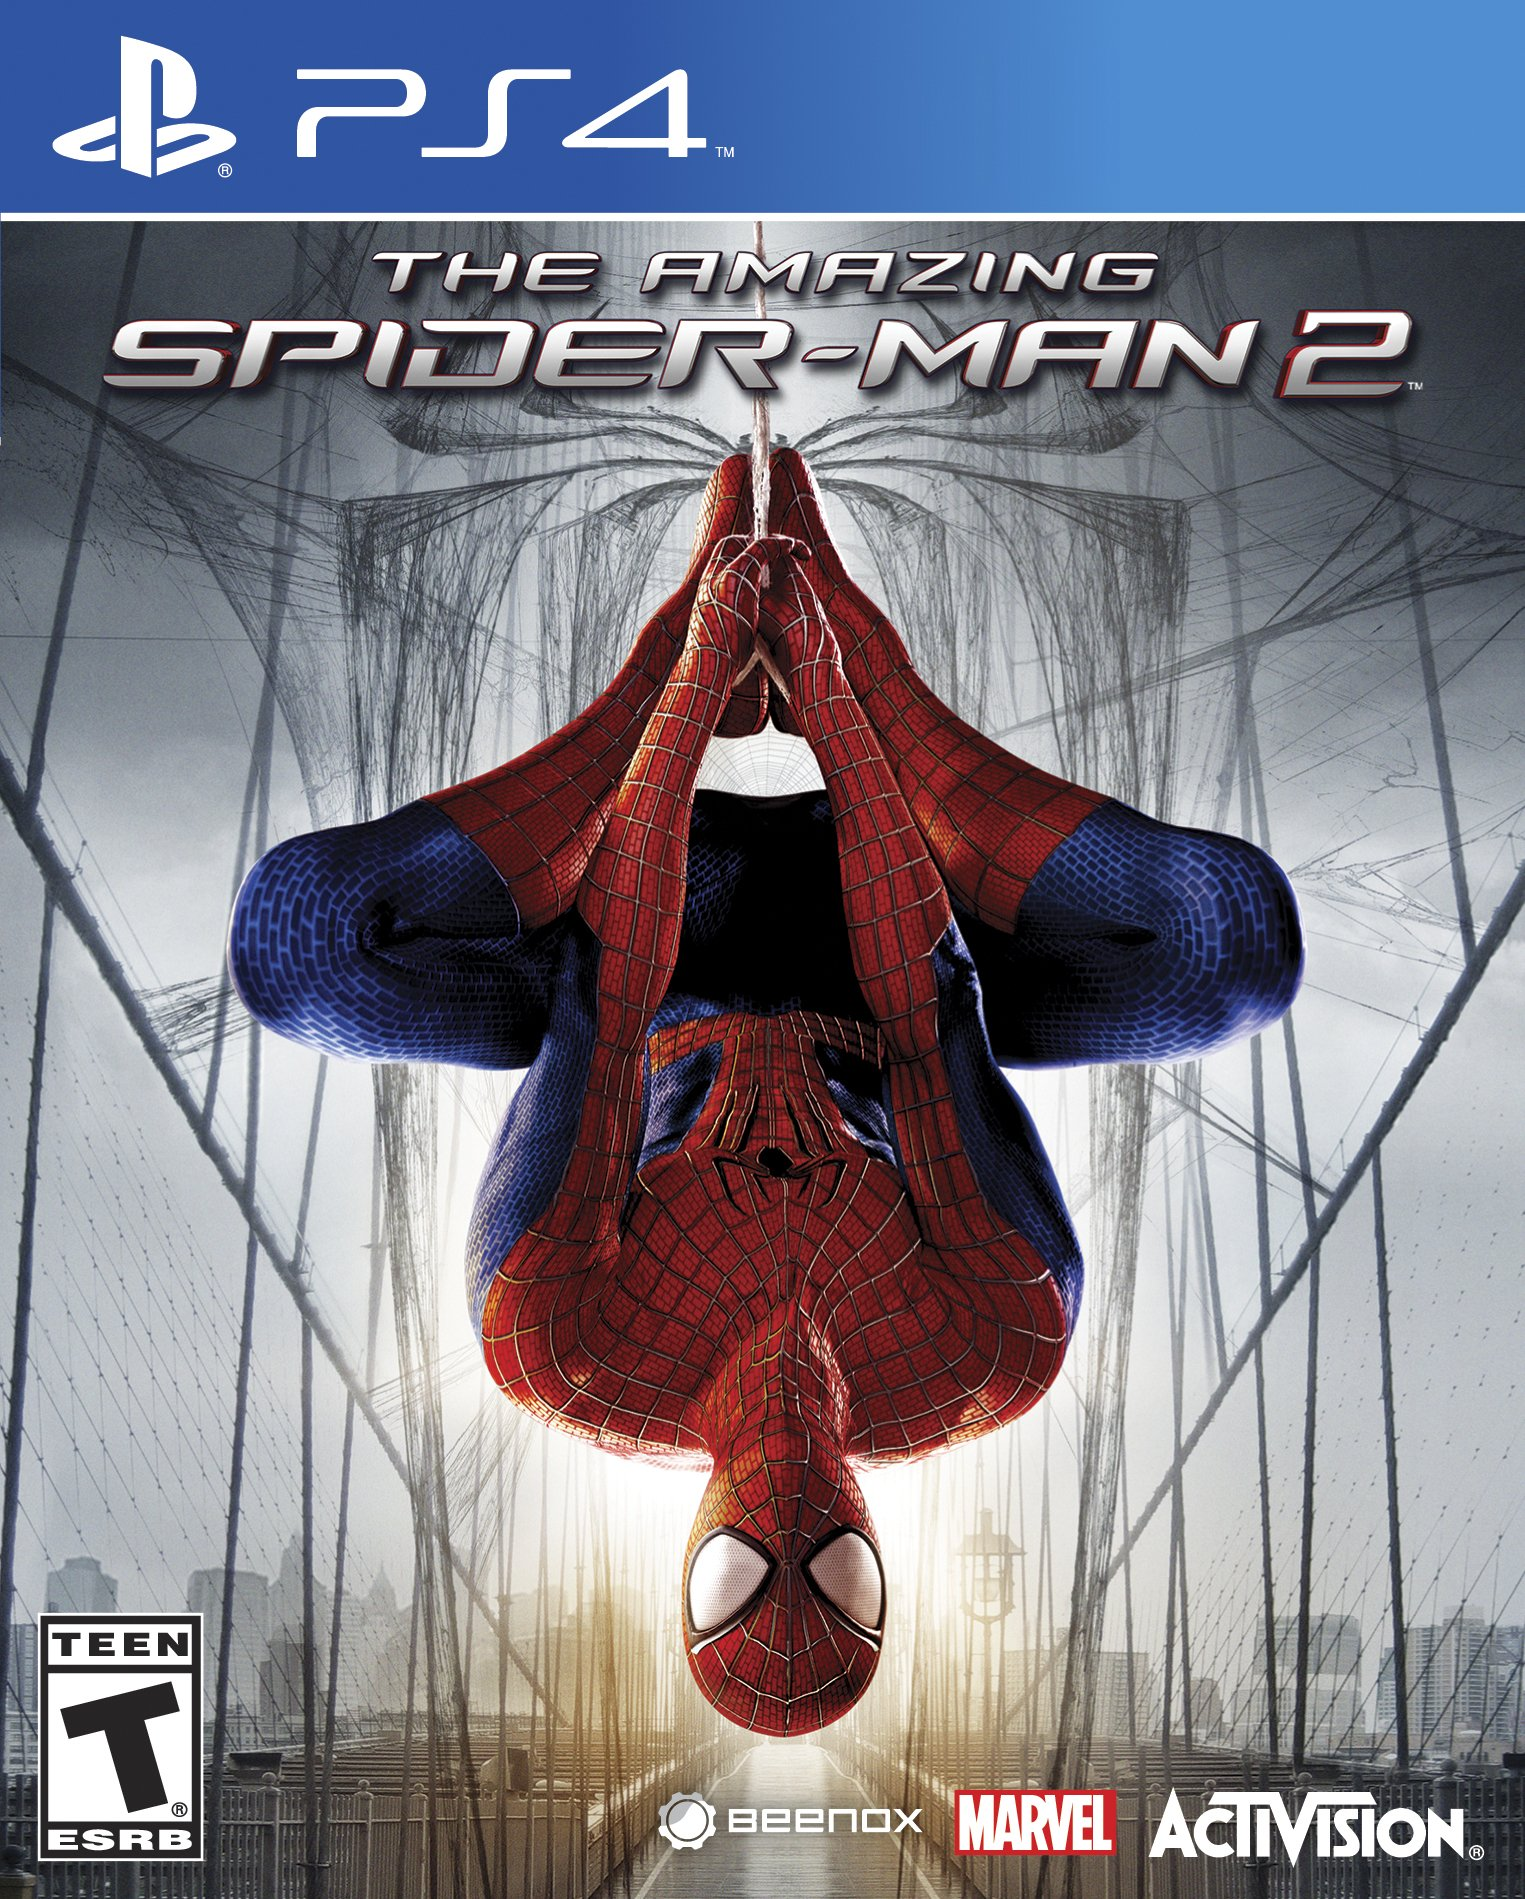 Deals on The Amazing Spider-Man 2 PlayStation 4 or Xbox One